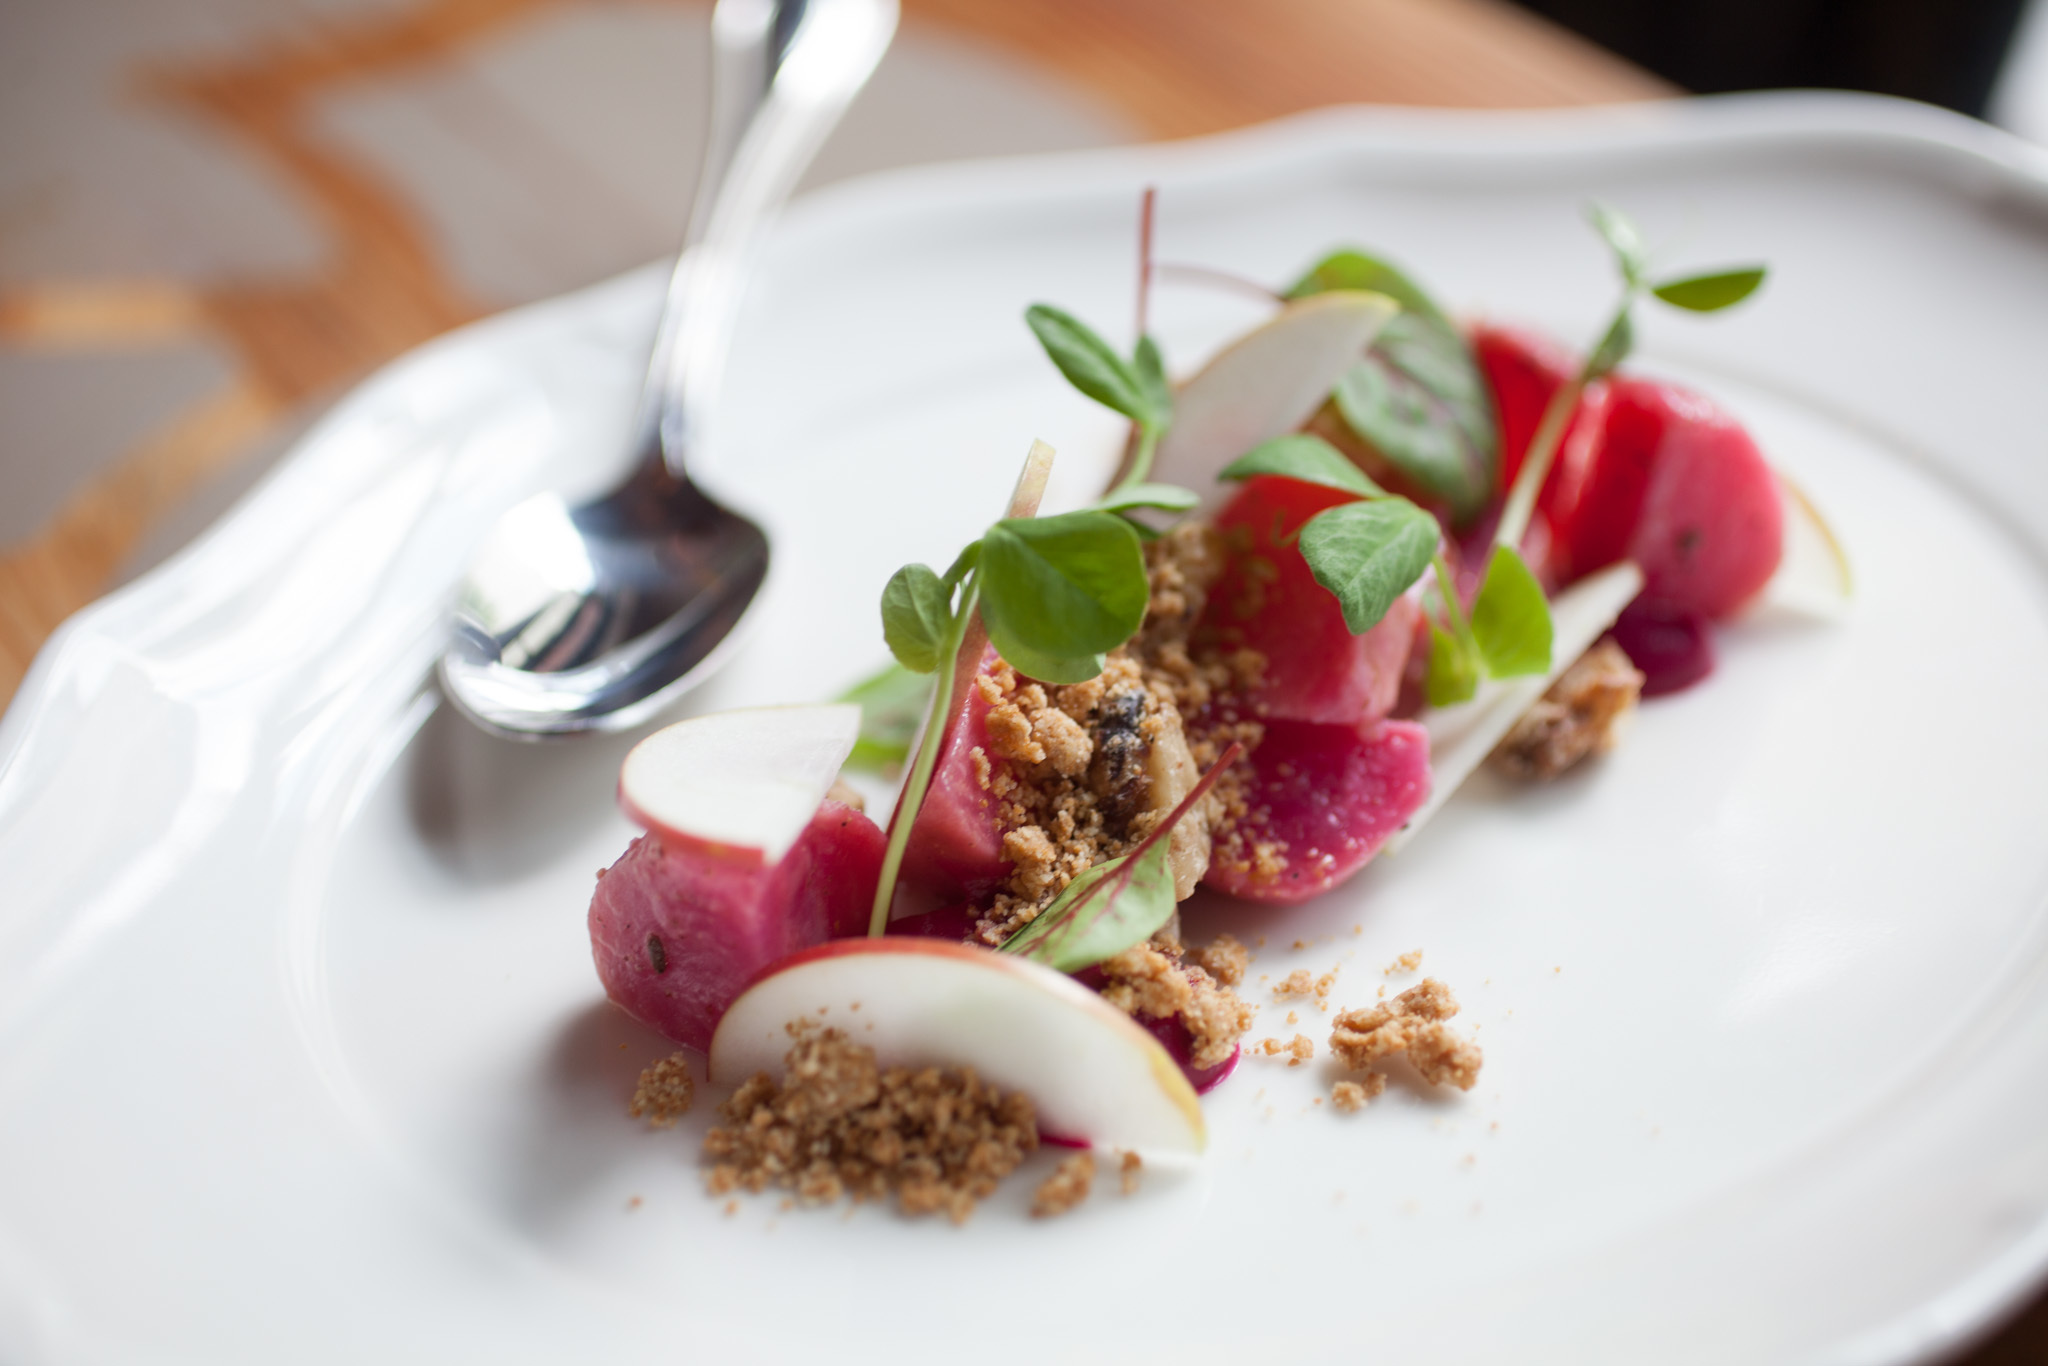 Slow-roasted beets at Bohemian House